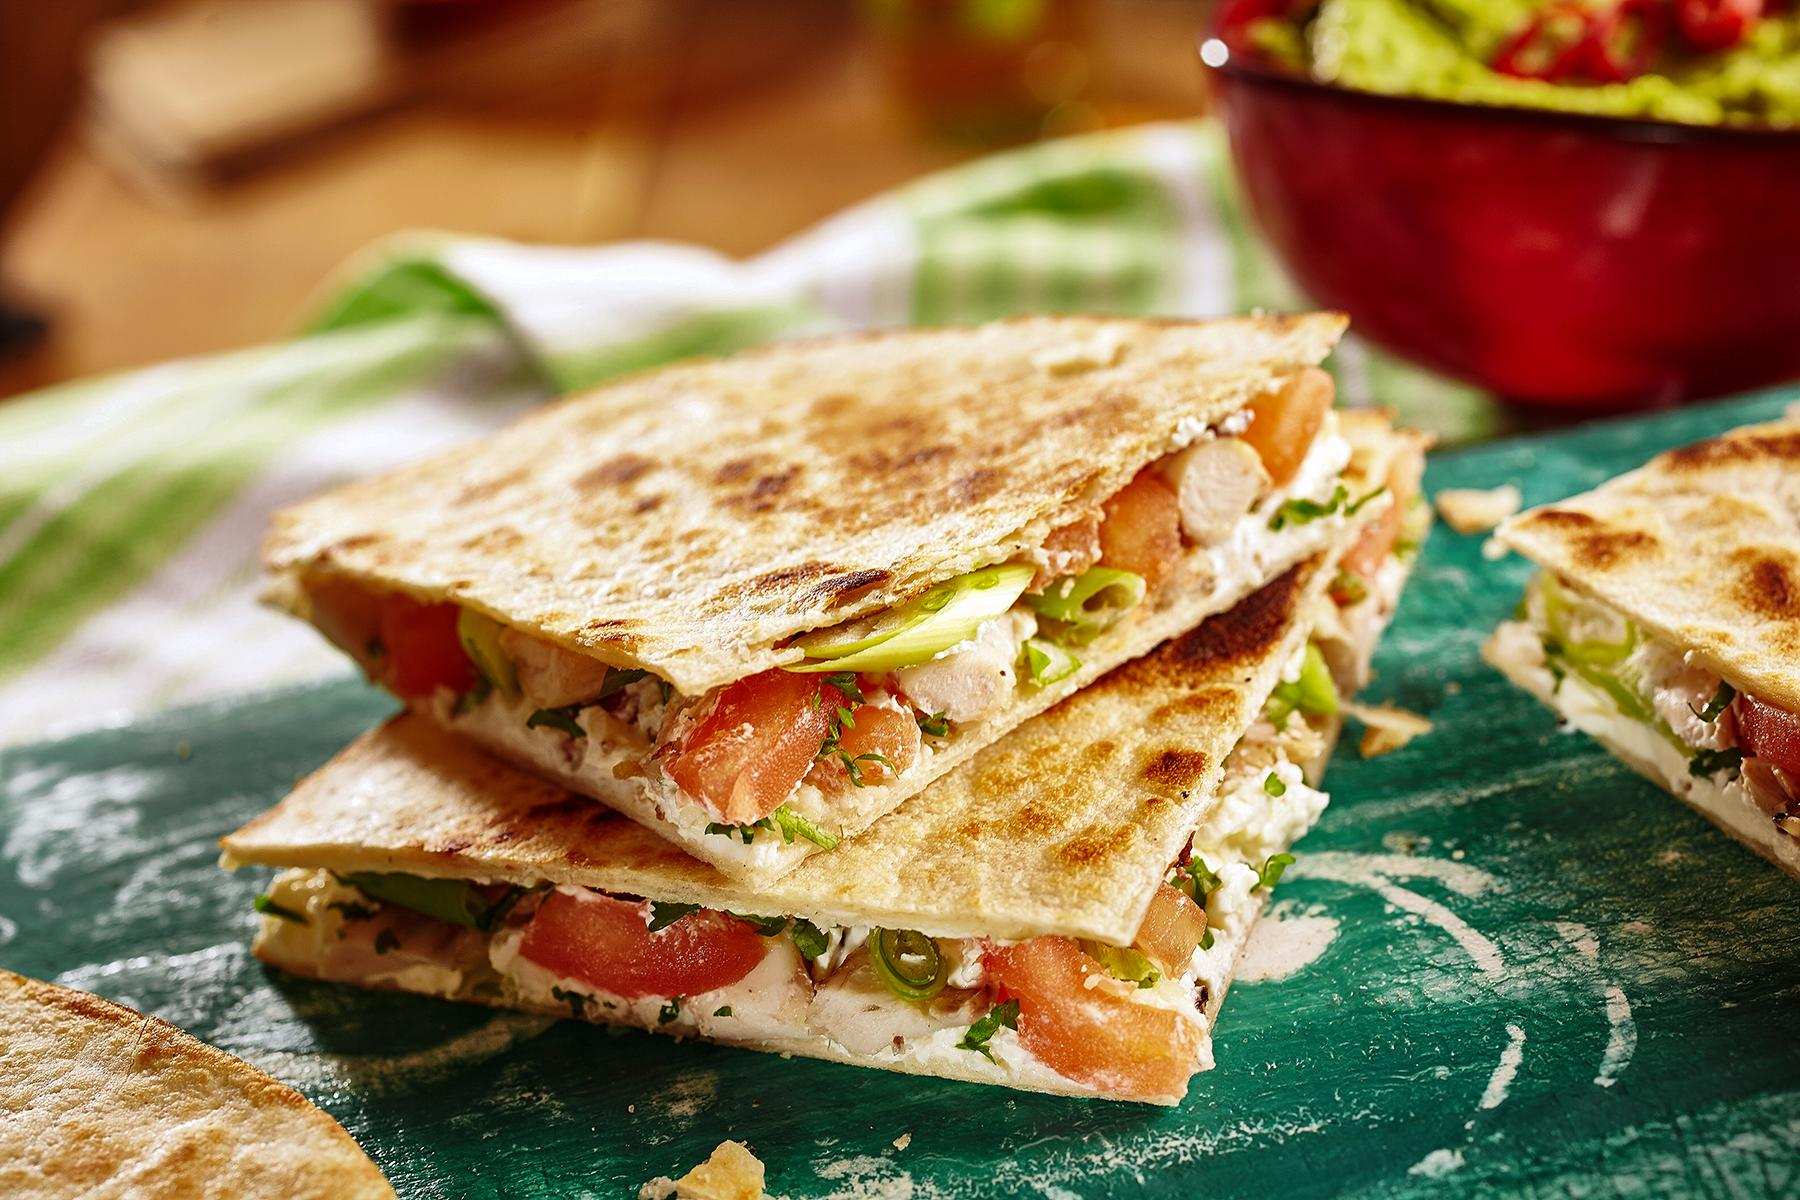 mexico eat foods shutterstock quesadillas iconic drink central stockcreations america